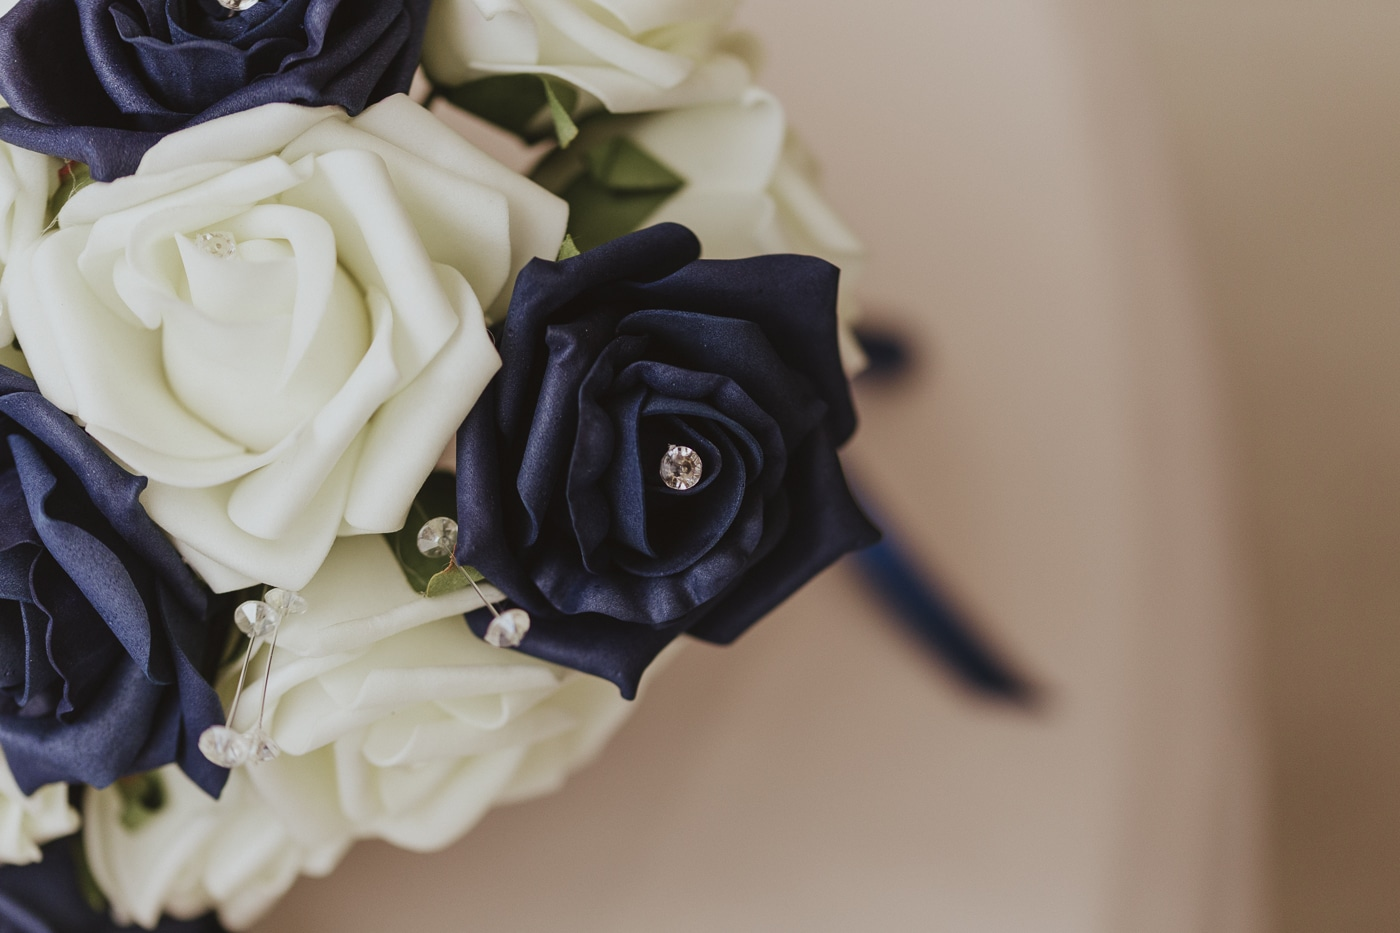 Black and white rose flowers with diamante gems in the middle and wrapped around the bridal bouquet by Joshua Wyborn